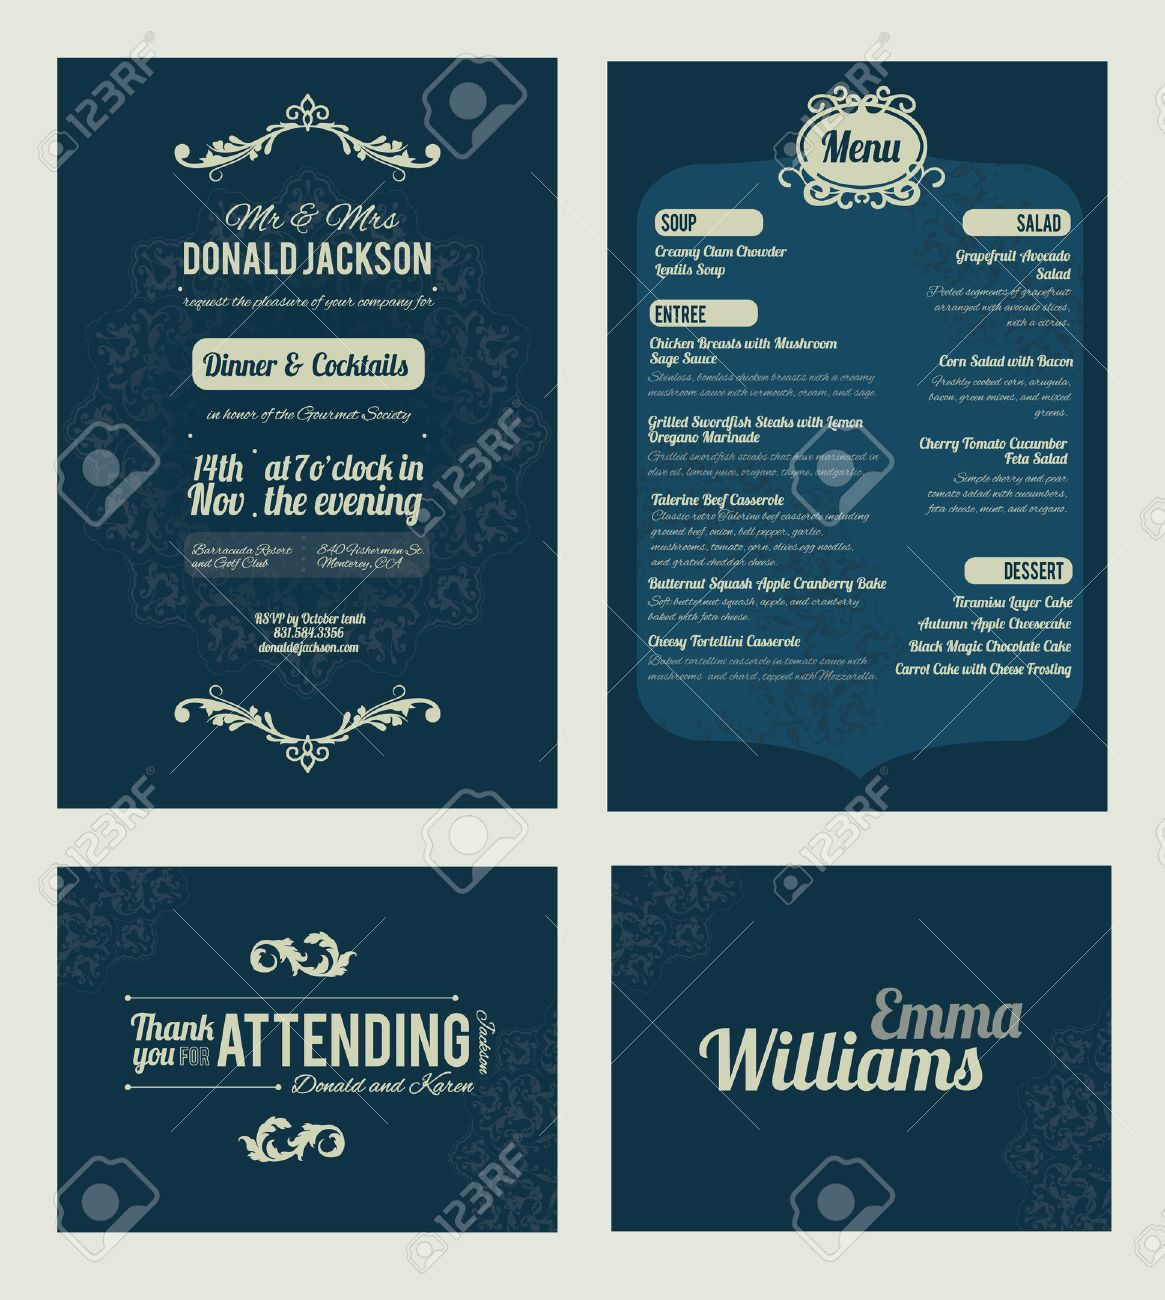 Vector Elegant Blue Dinner Coctails Party Invitation Set. Invite, menu, thank you, place card, event collection, graphic design - 48482474